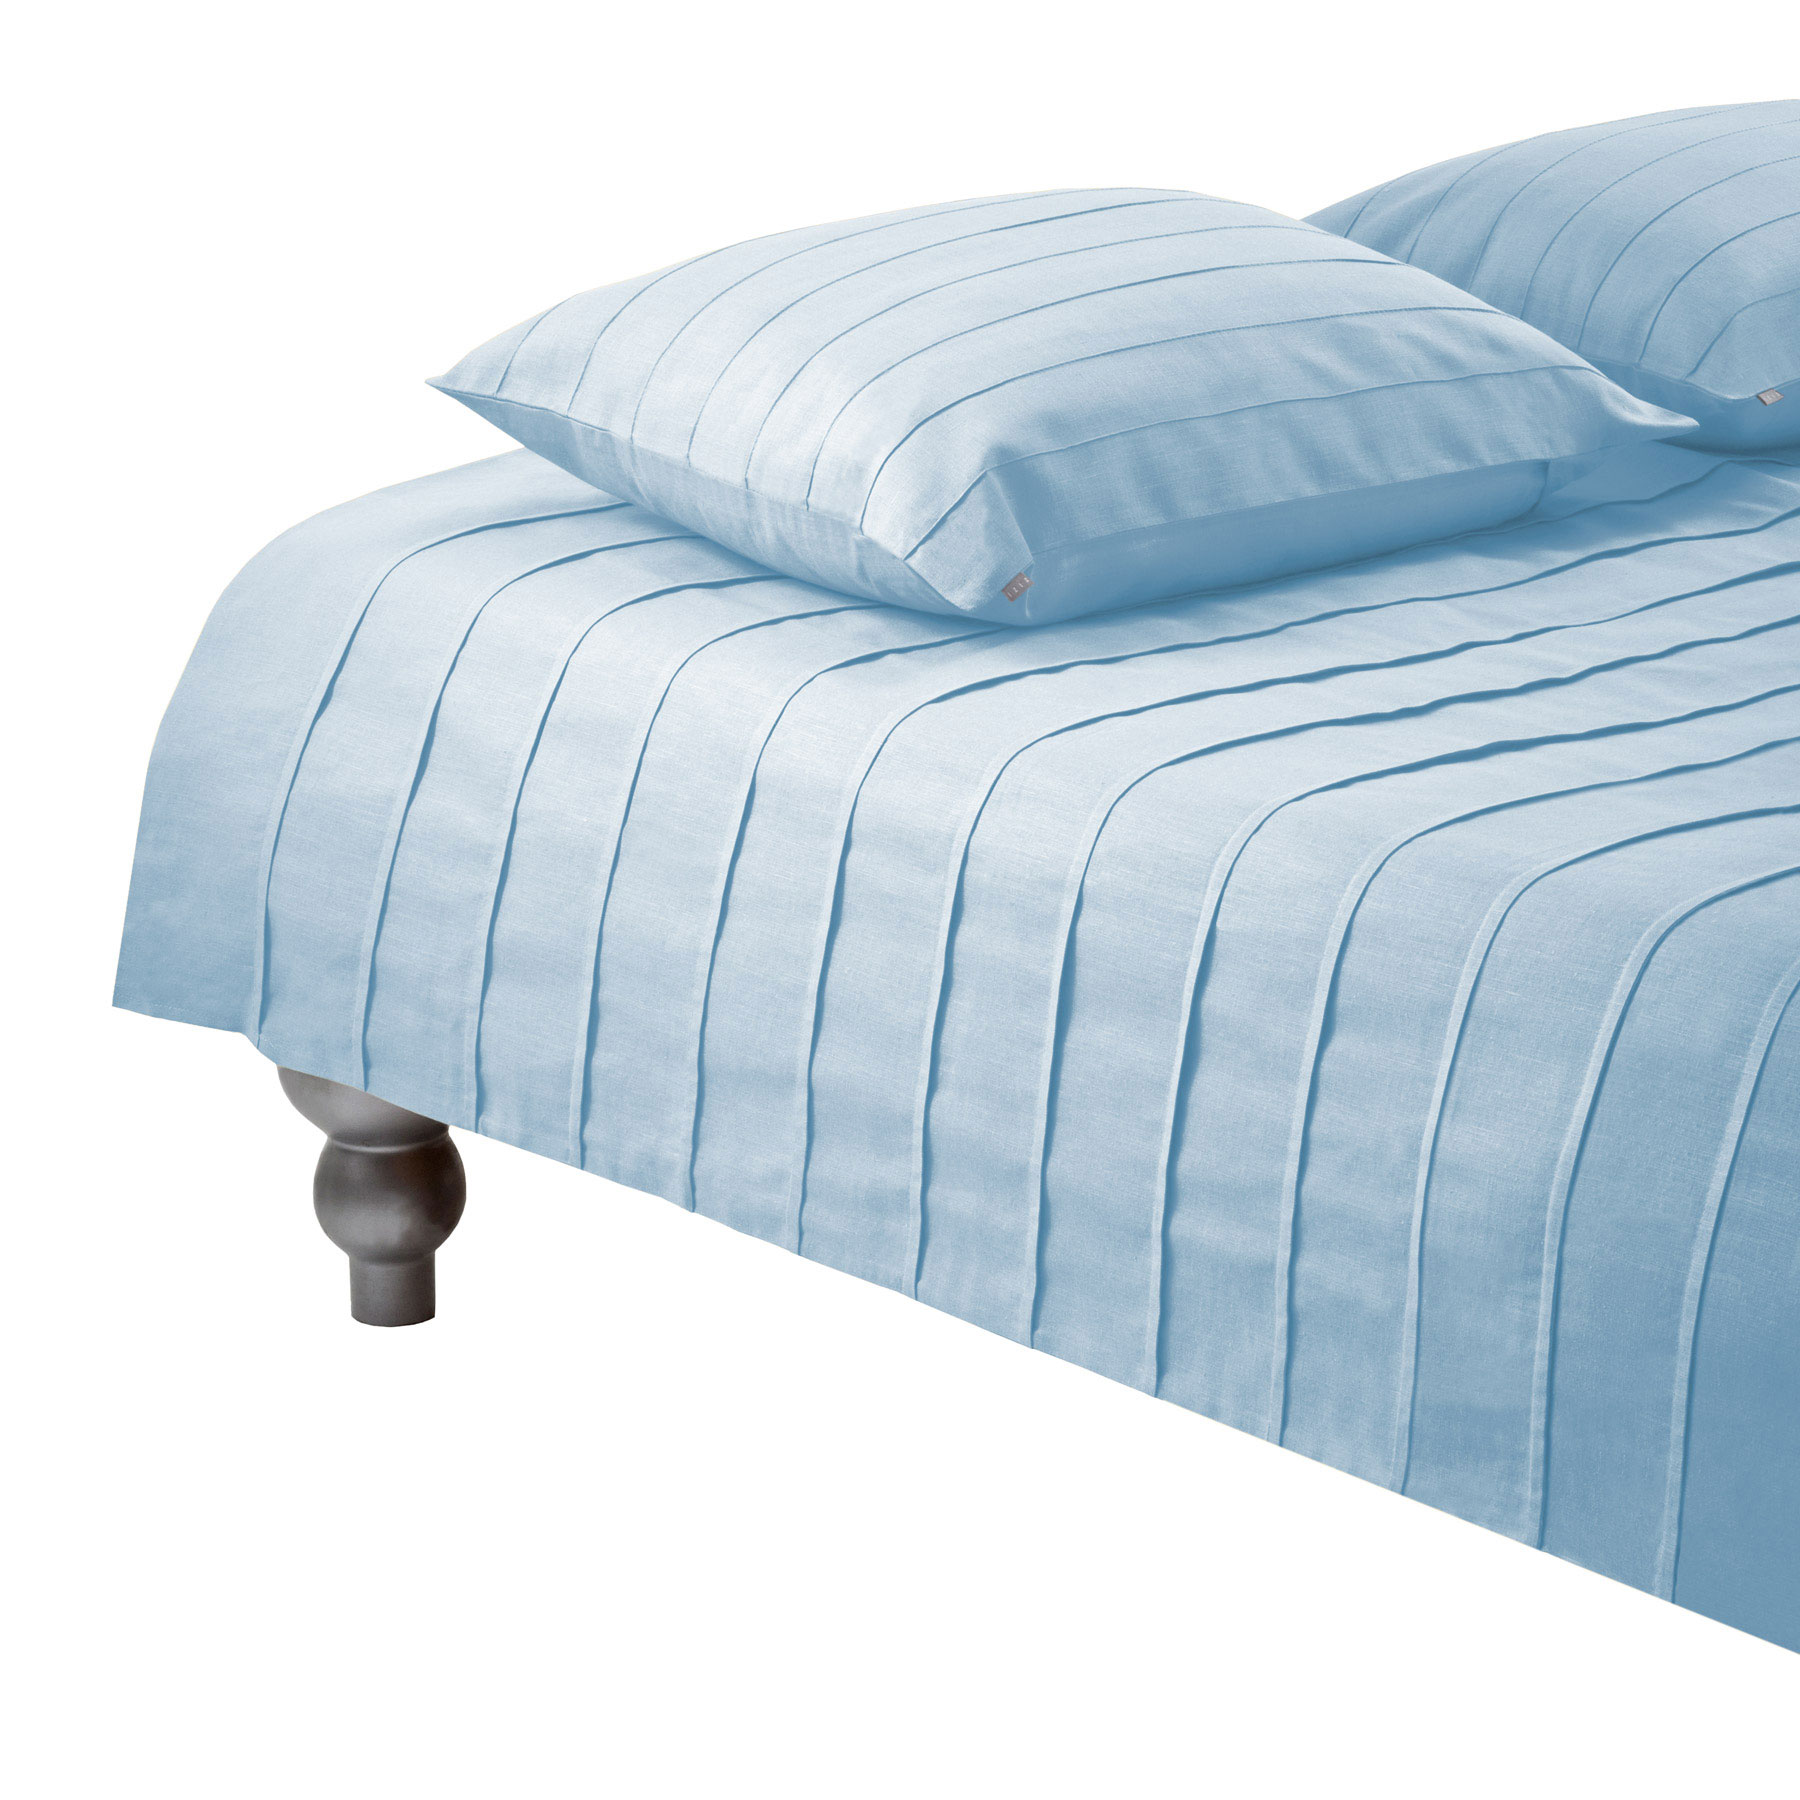 DUVET COVER IRIS <br />light blue